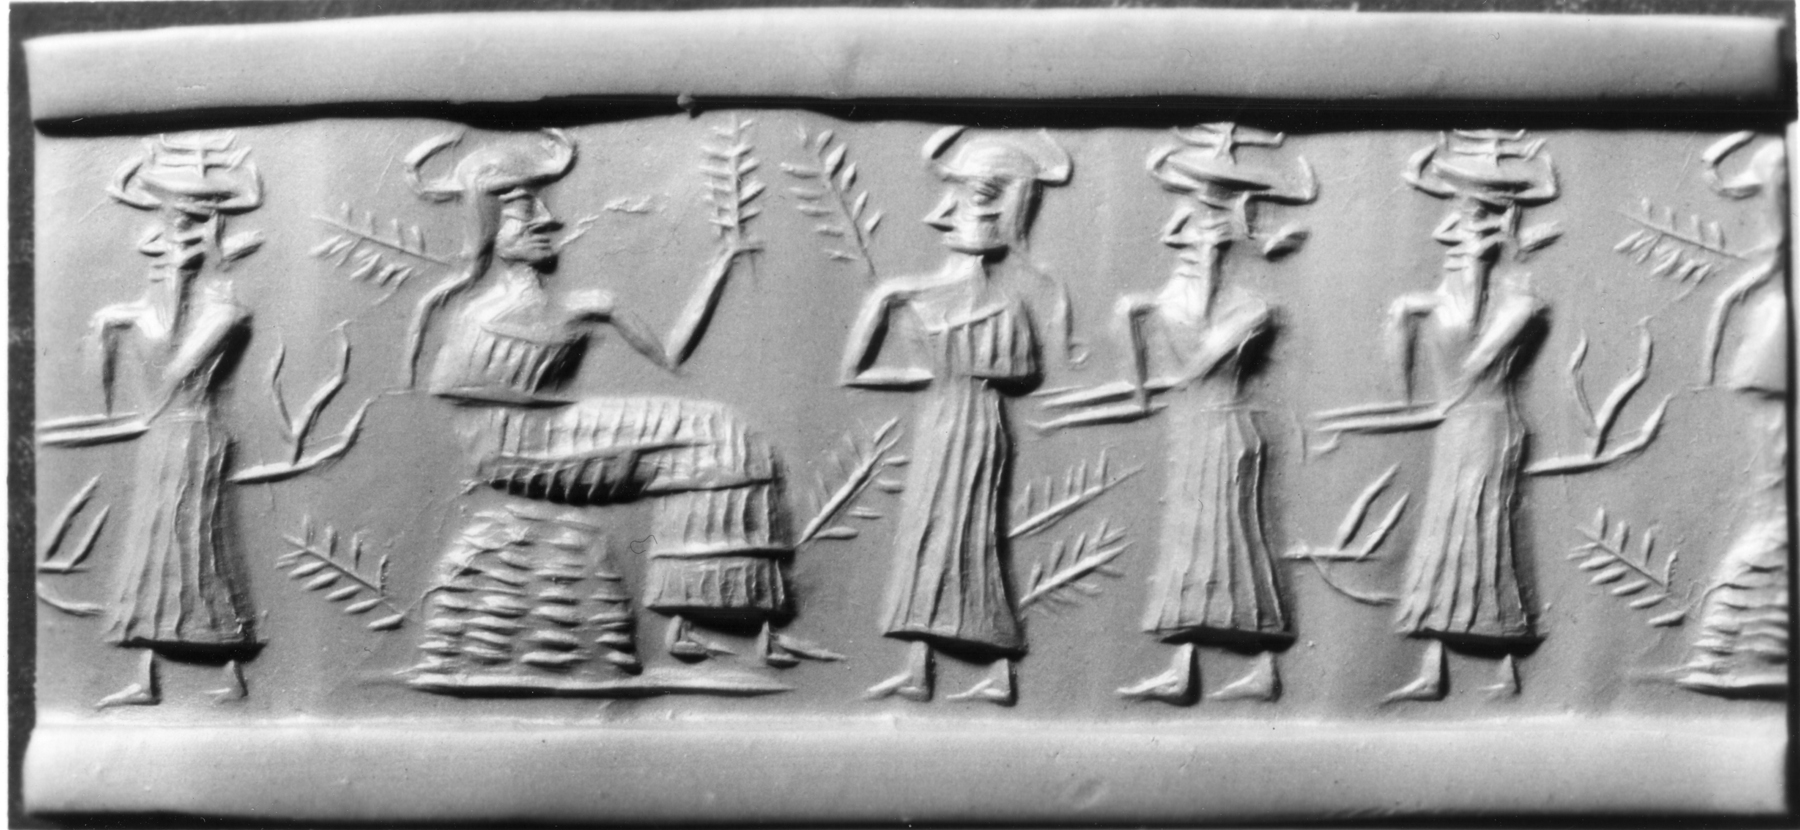 3c - Nisaba, Ninlil, & 2 unidentified gods, Nisaba is the spouse to Haia, mother to Ninlil, mother-in-law to Earth Colony Commander Enlil, goddess of scribes, & goddess of grains, SEE NISABA TEXTS BELOW